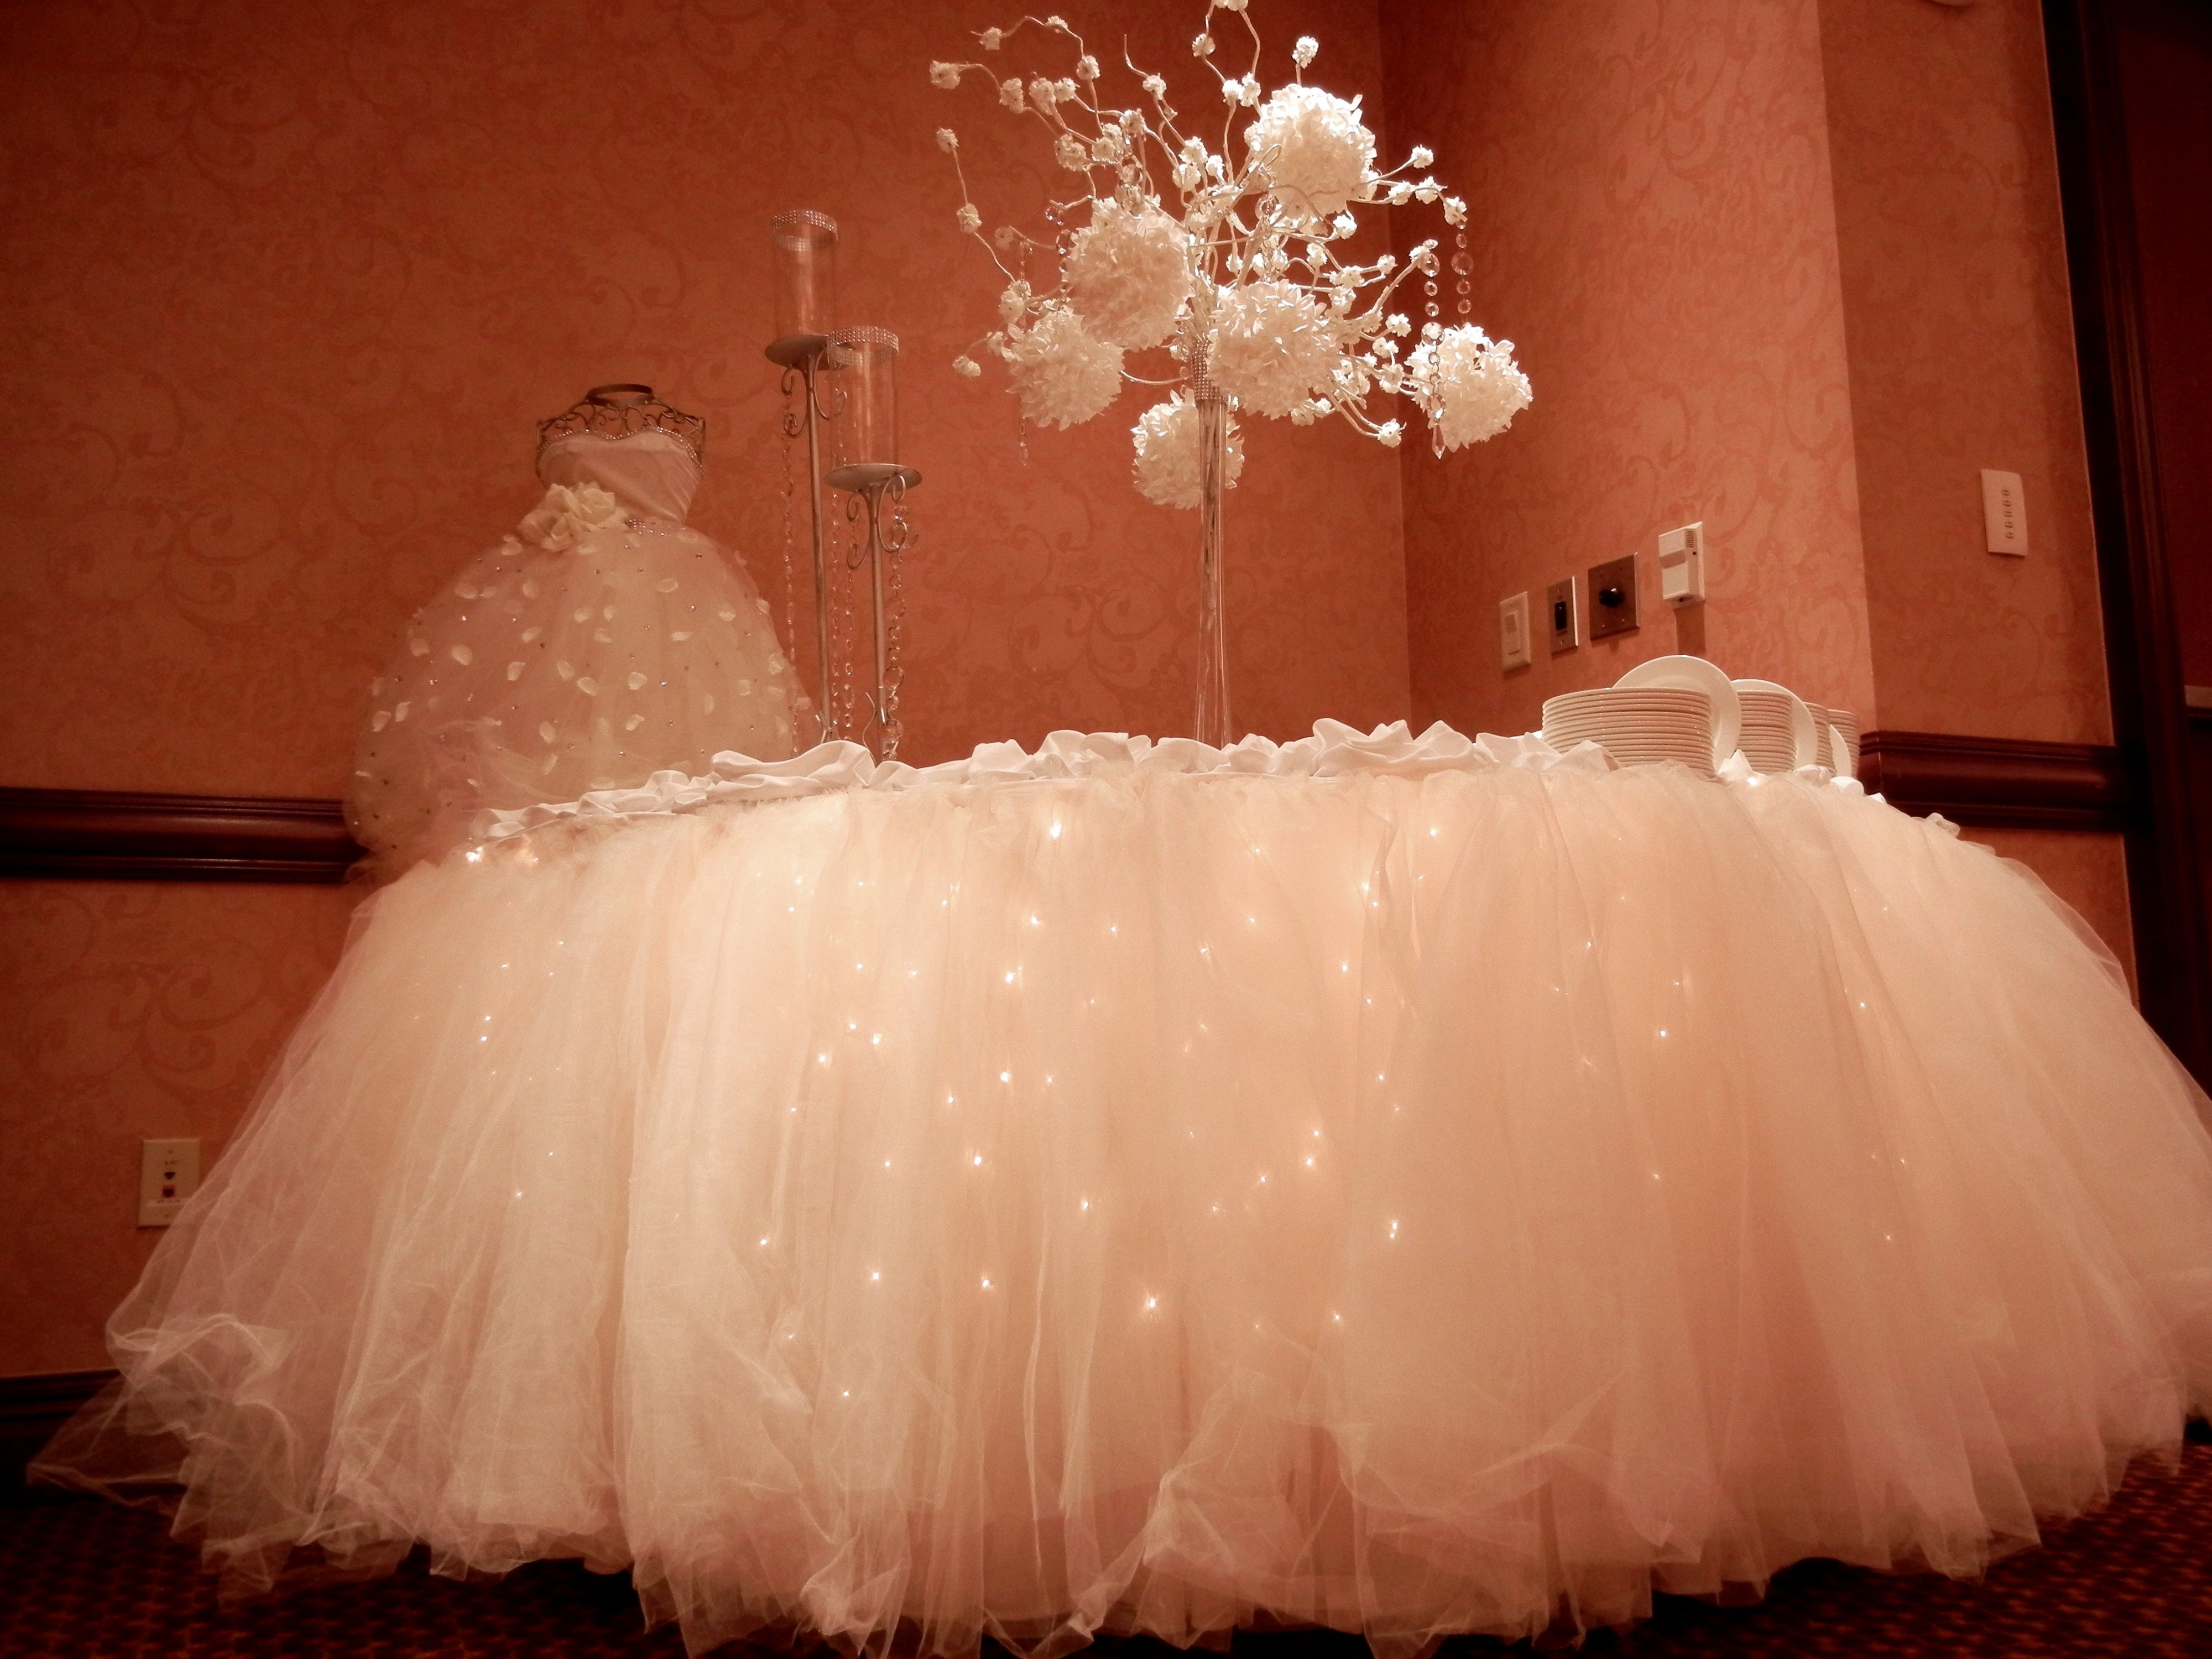 Wedding Cake Table with White Lights and Tulle // Embassy Suites Hampton Roads Mercury Ballroom